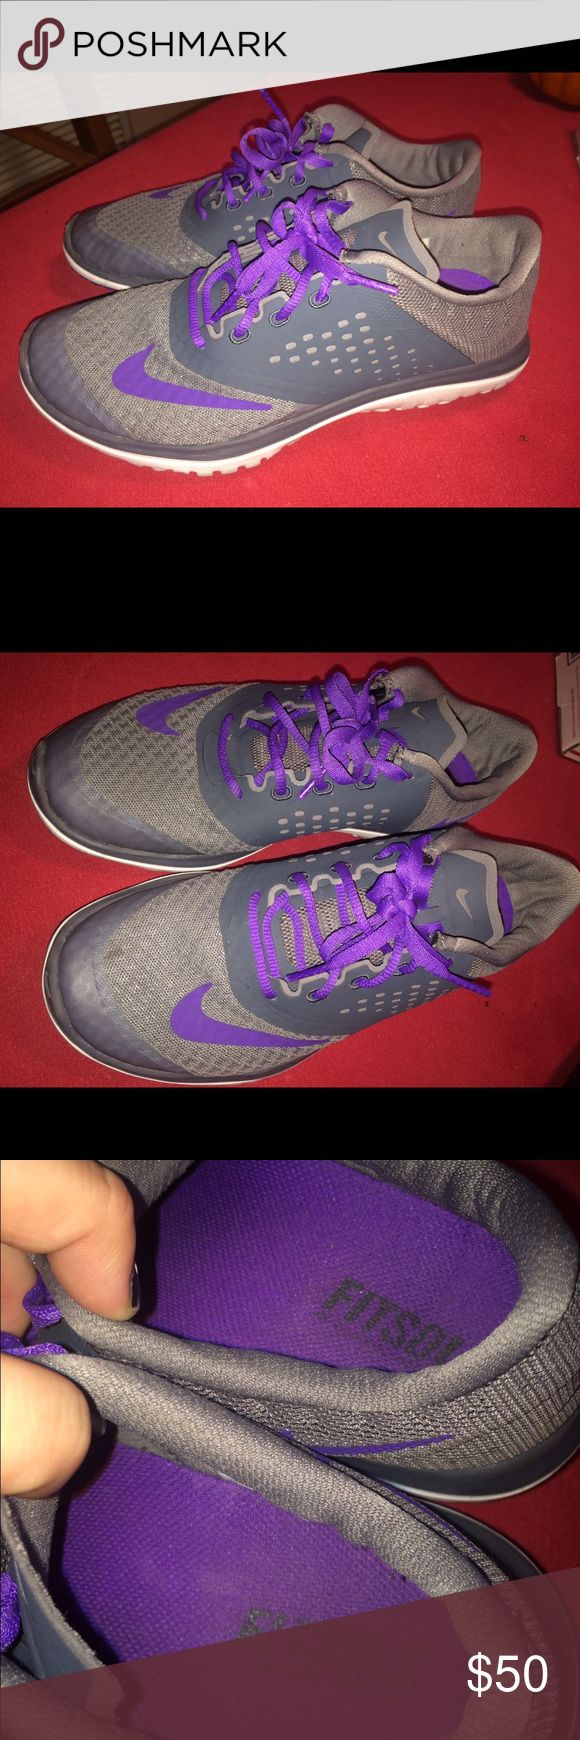 NIKE TRAINING SHOES USED ONCE!! Size 6 in womens nikes training and indoor soccer shoes Nike Shoes Athletic Shoes